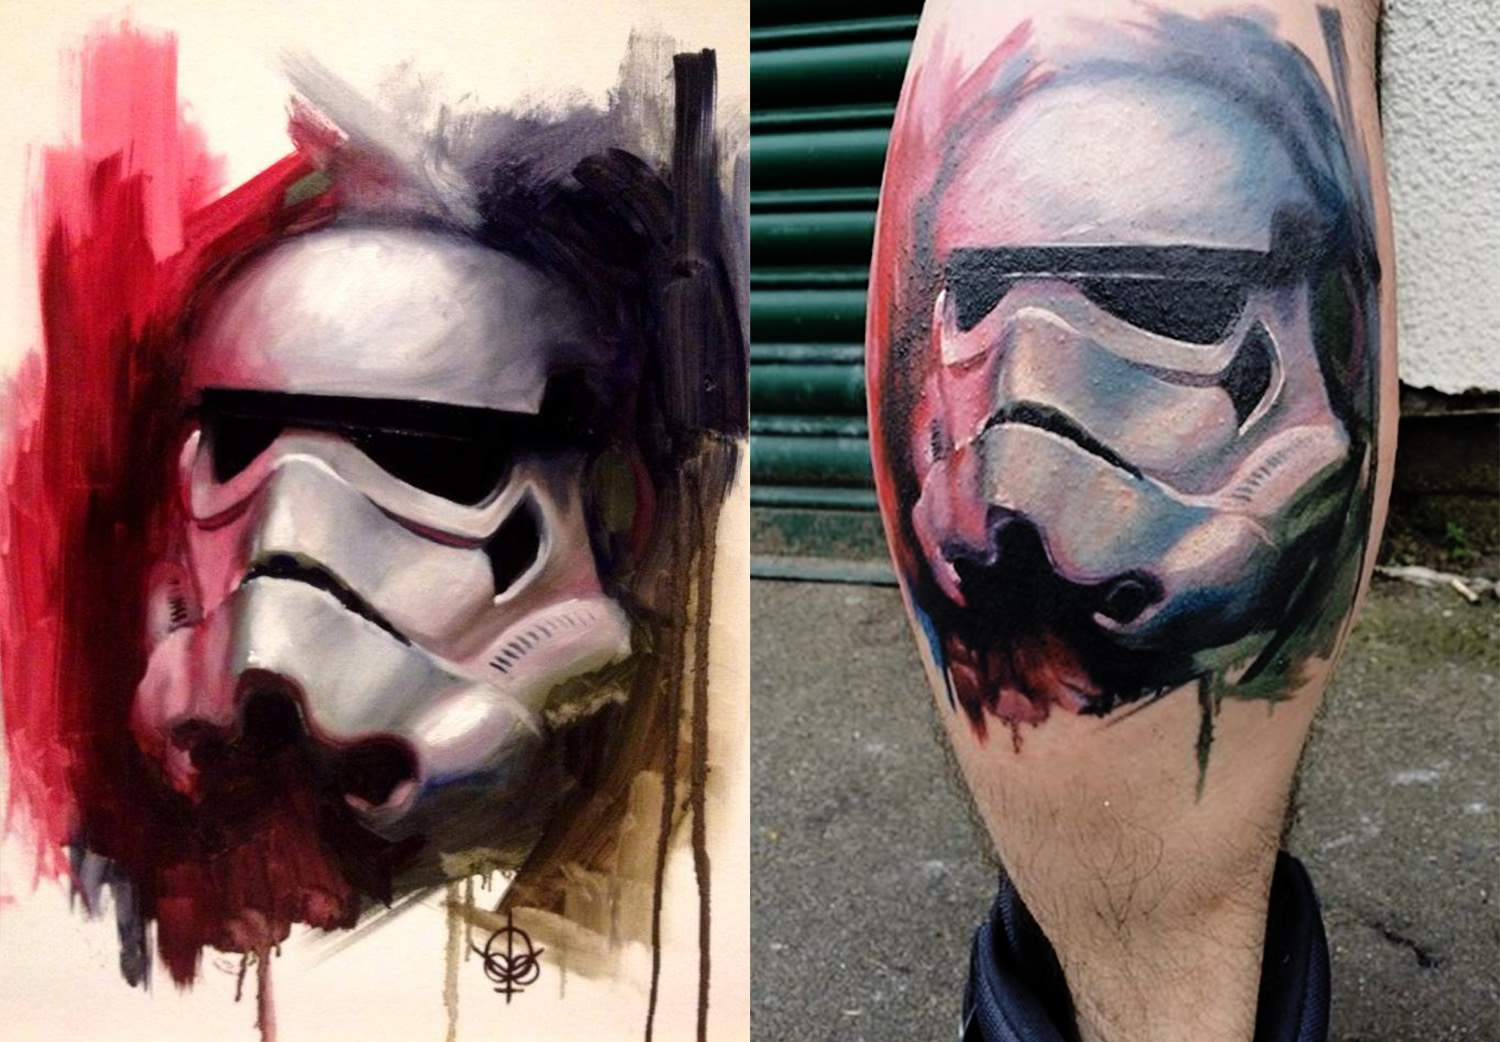 On the left the Stormtrooper painting that served as basis for the tattoo on the right, by Matt Oddboy Barratt-Jones. Star wars